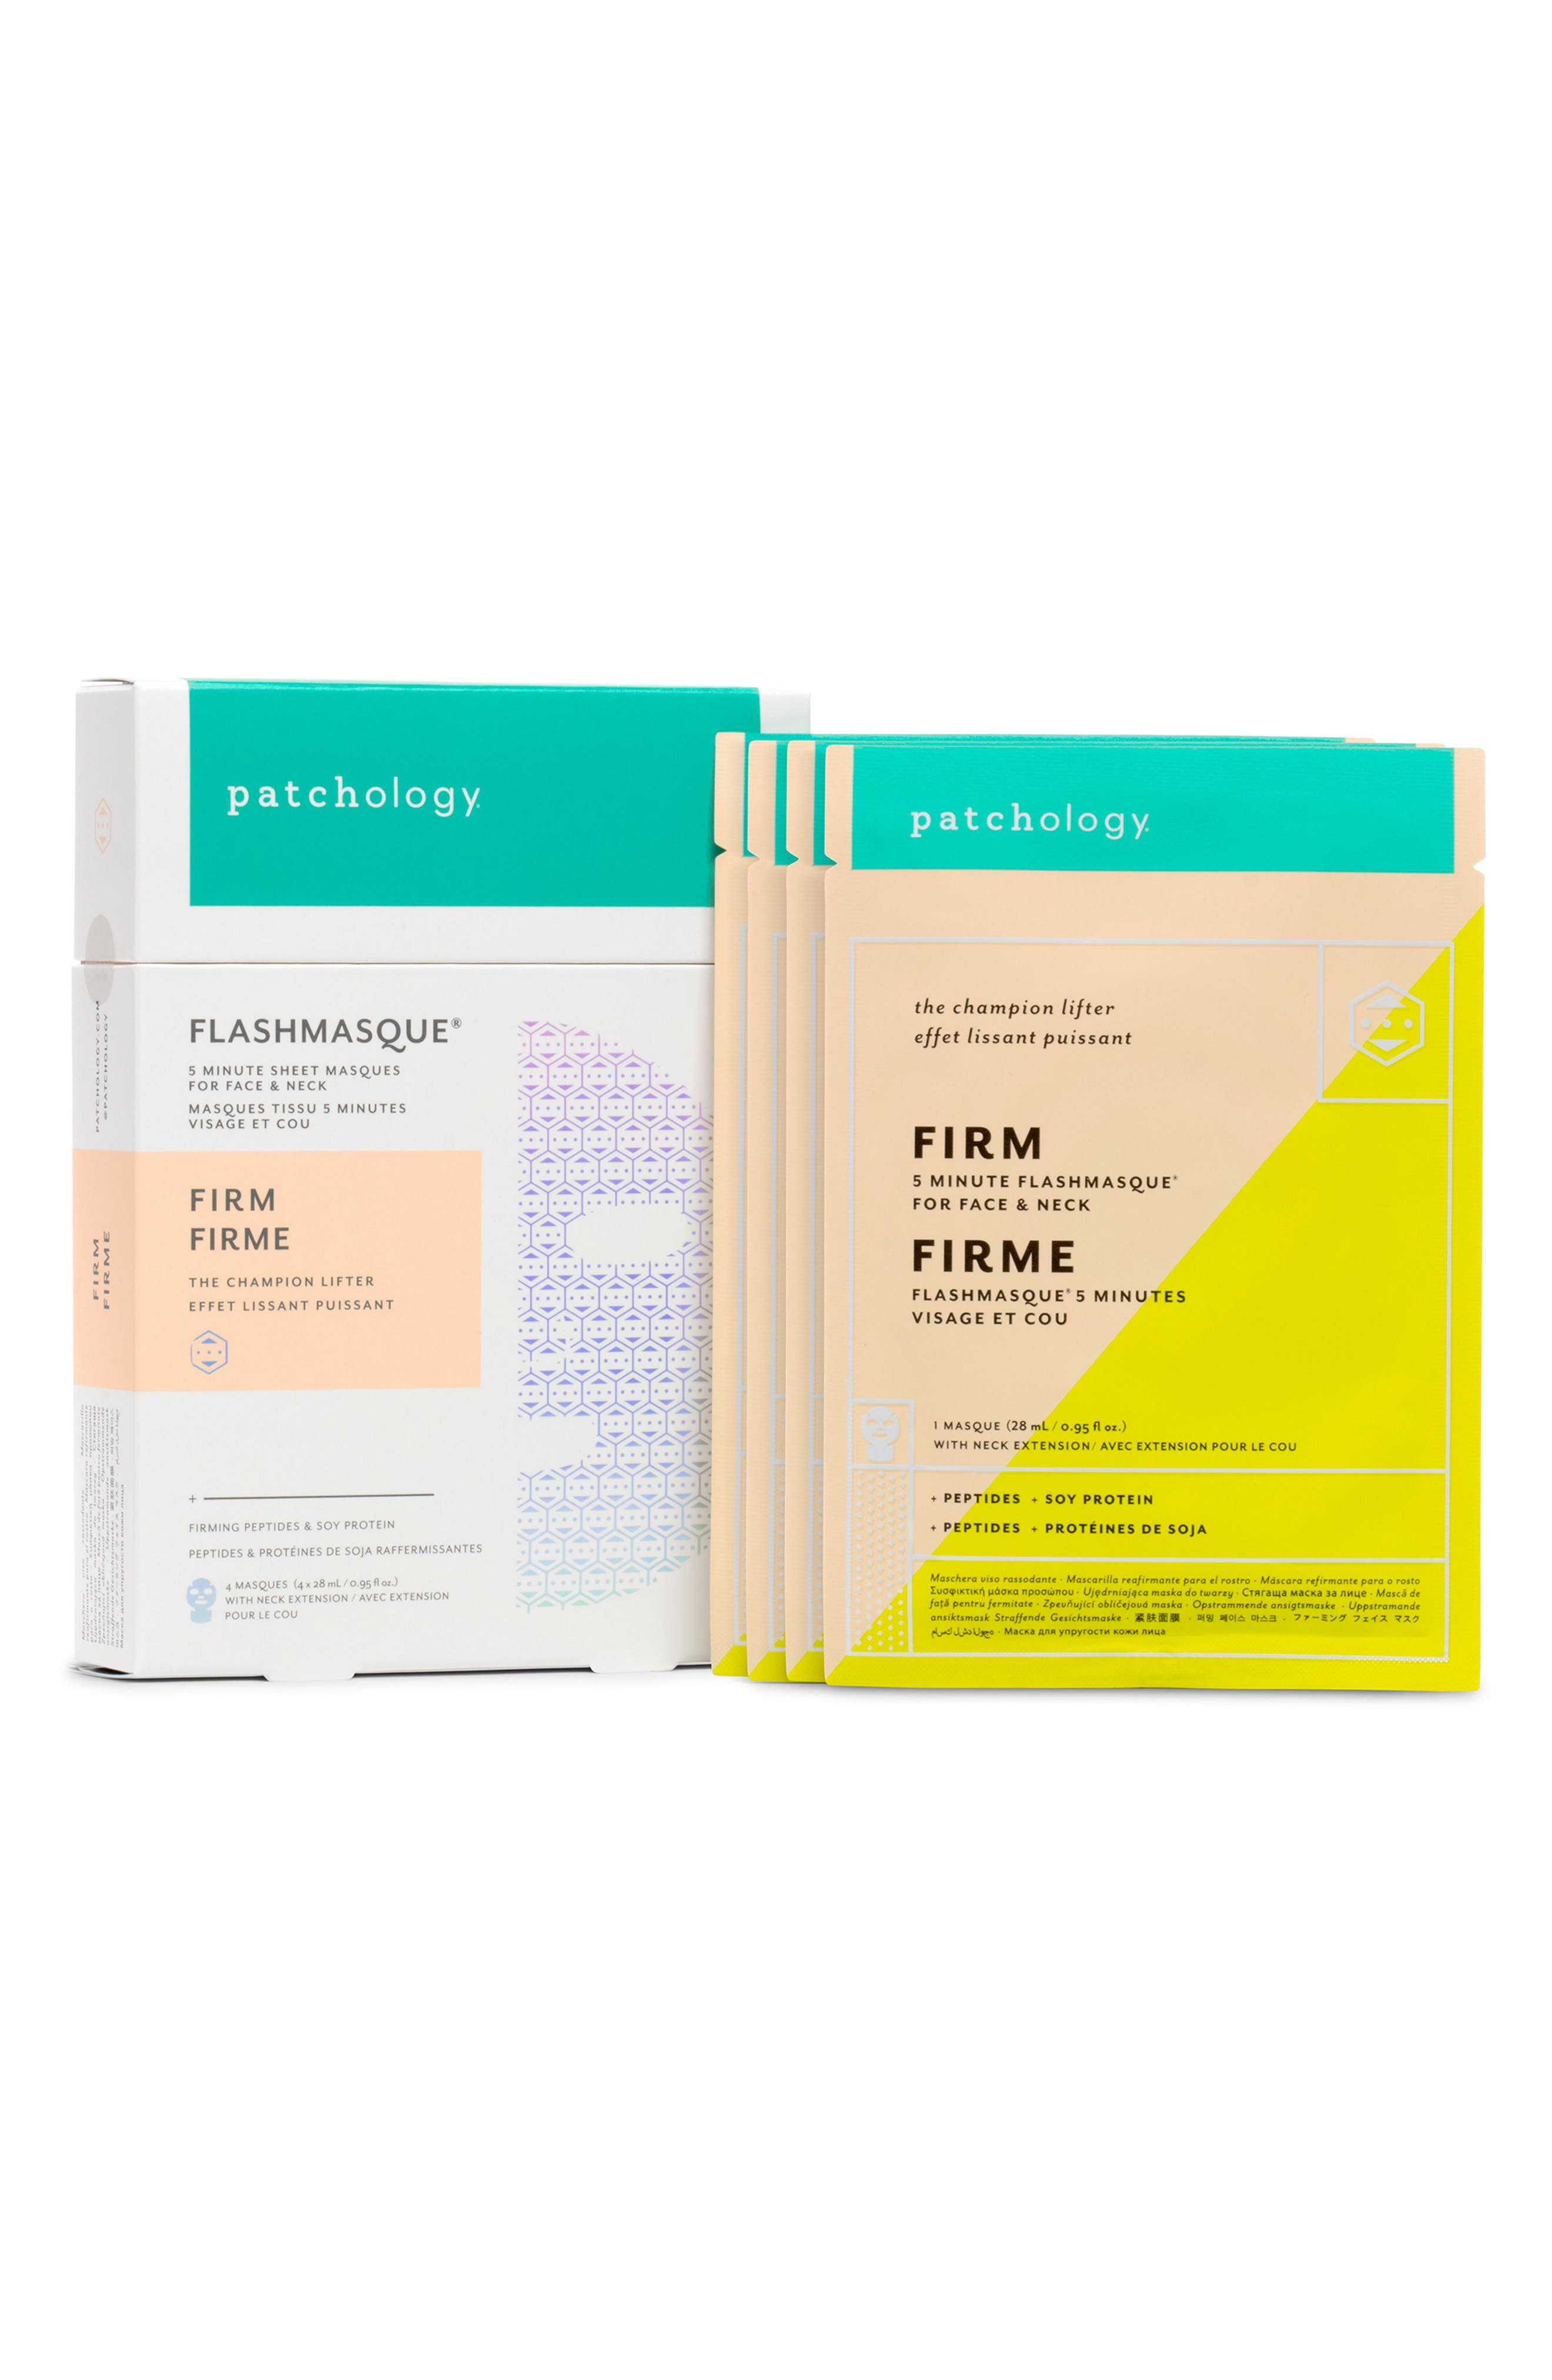 PATCHOLOGY Flashmasque Firm 5-Minute Face & Neck Sheet Mask